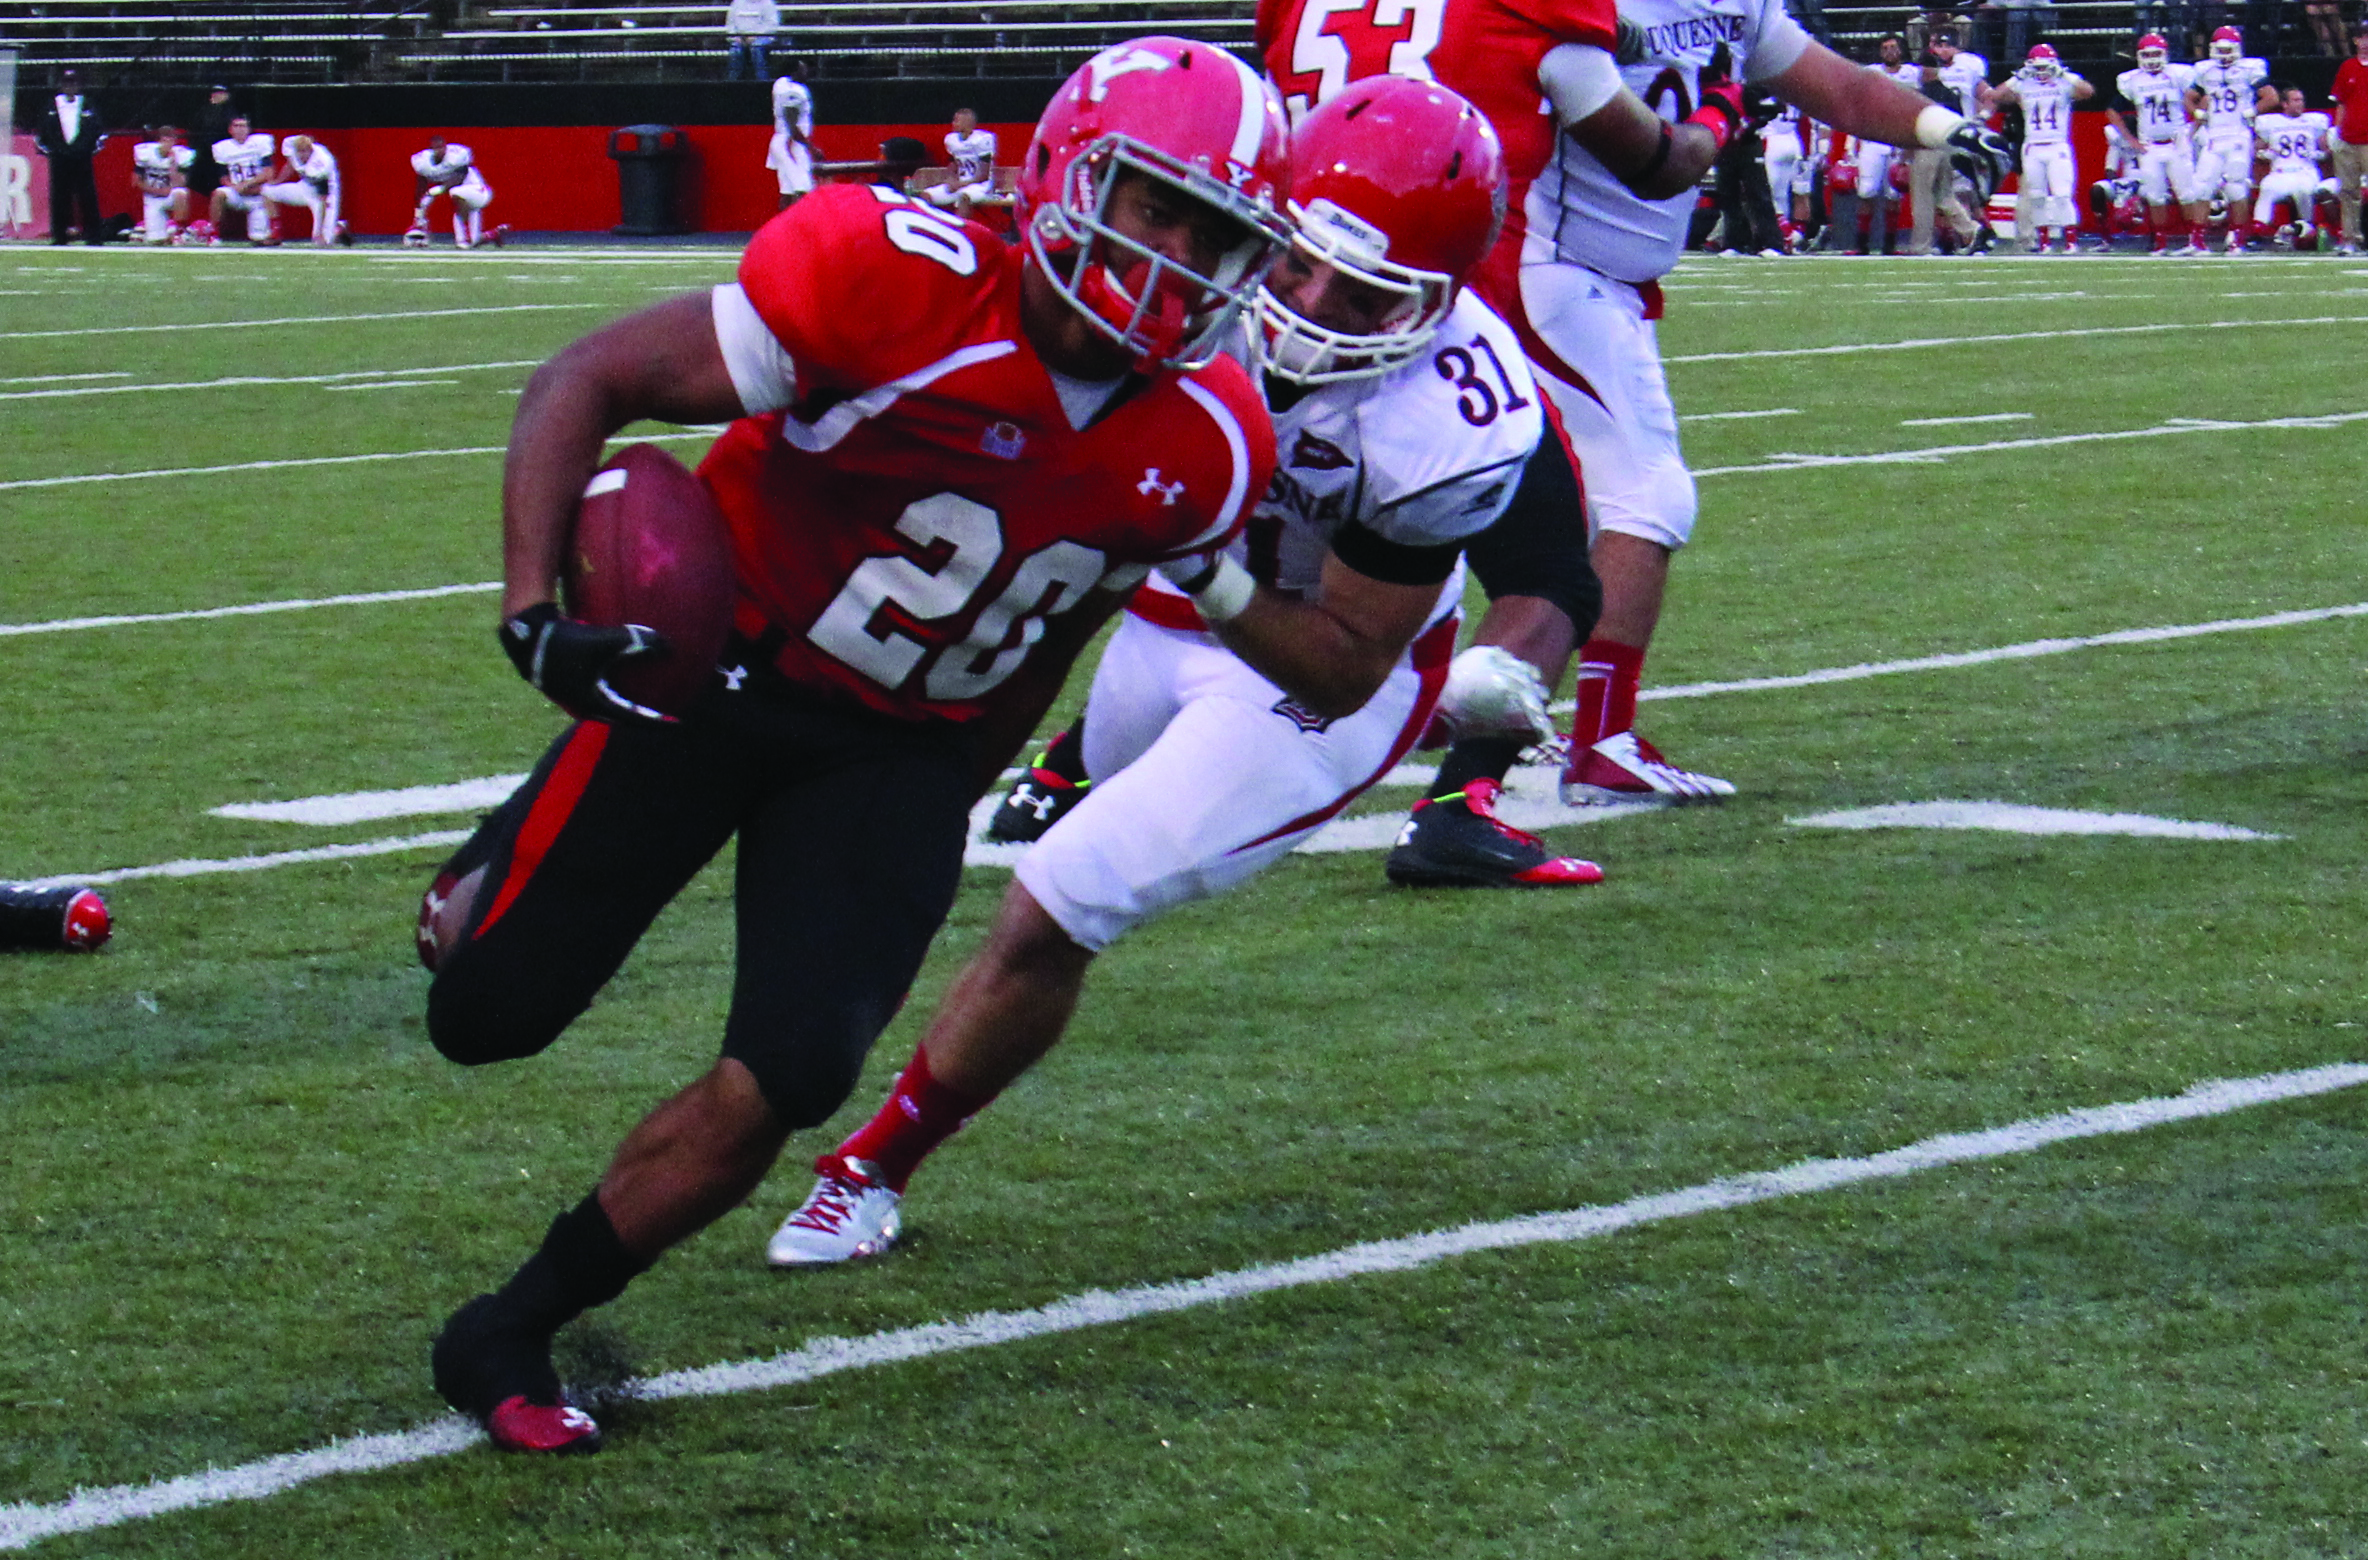 Youngstown State University's Jody Webb (20) evades a Duquesne University defender during a game in September of 2013. Photo by Dustin Livesay/ The Jambar.